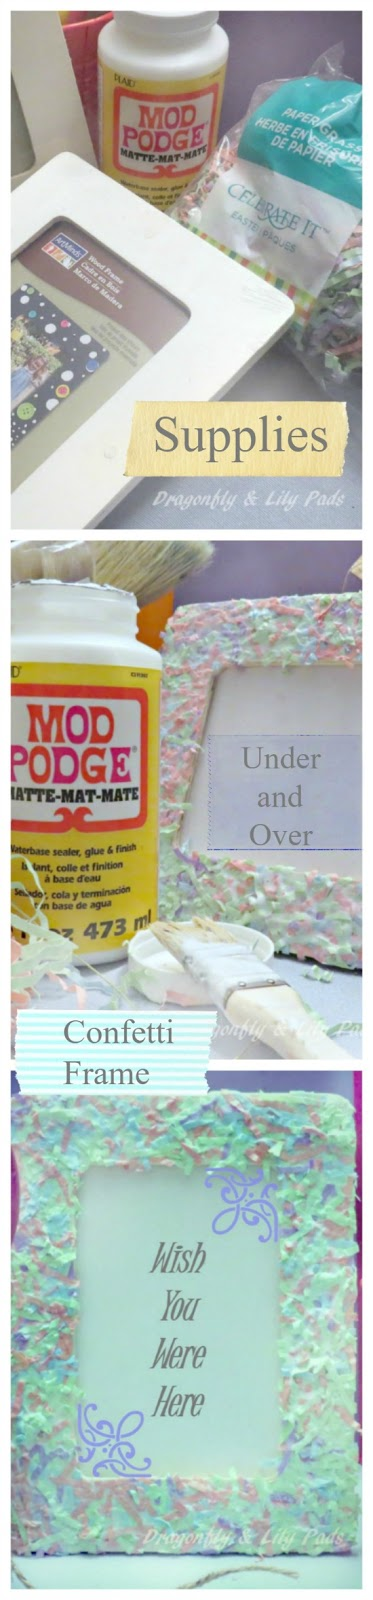 Pinterest Image for Summer Fun Kids Series, Mod Podge Picture Frame Gift, Baby, Directions